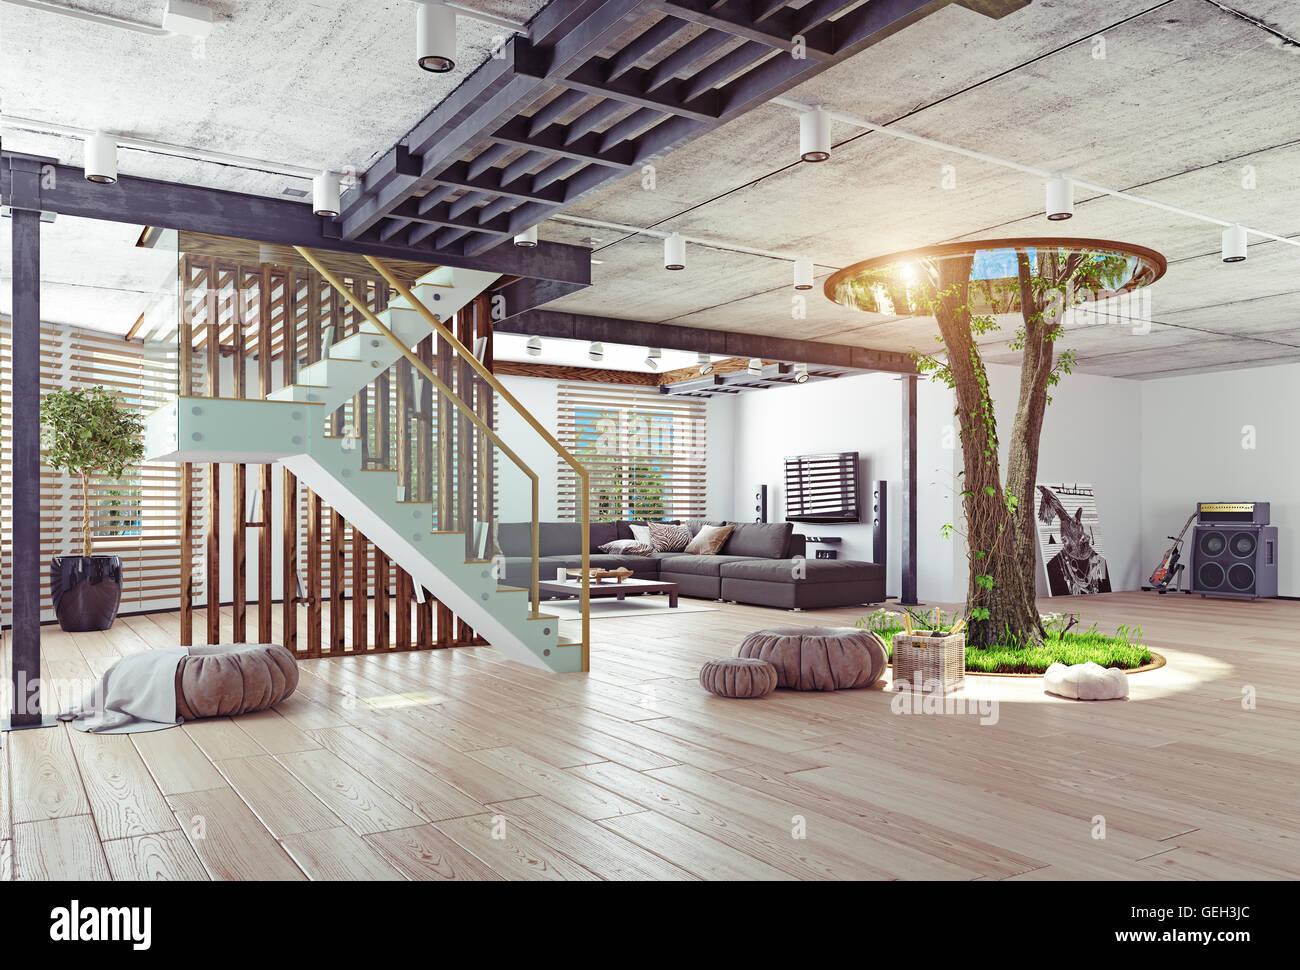 High Quality Eco Design Of The Modern Interior. Real Living Tree Indoor. 3d Concept